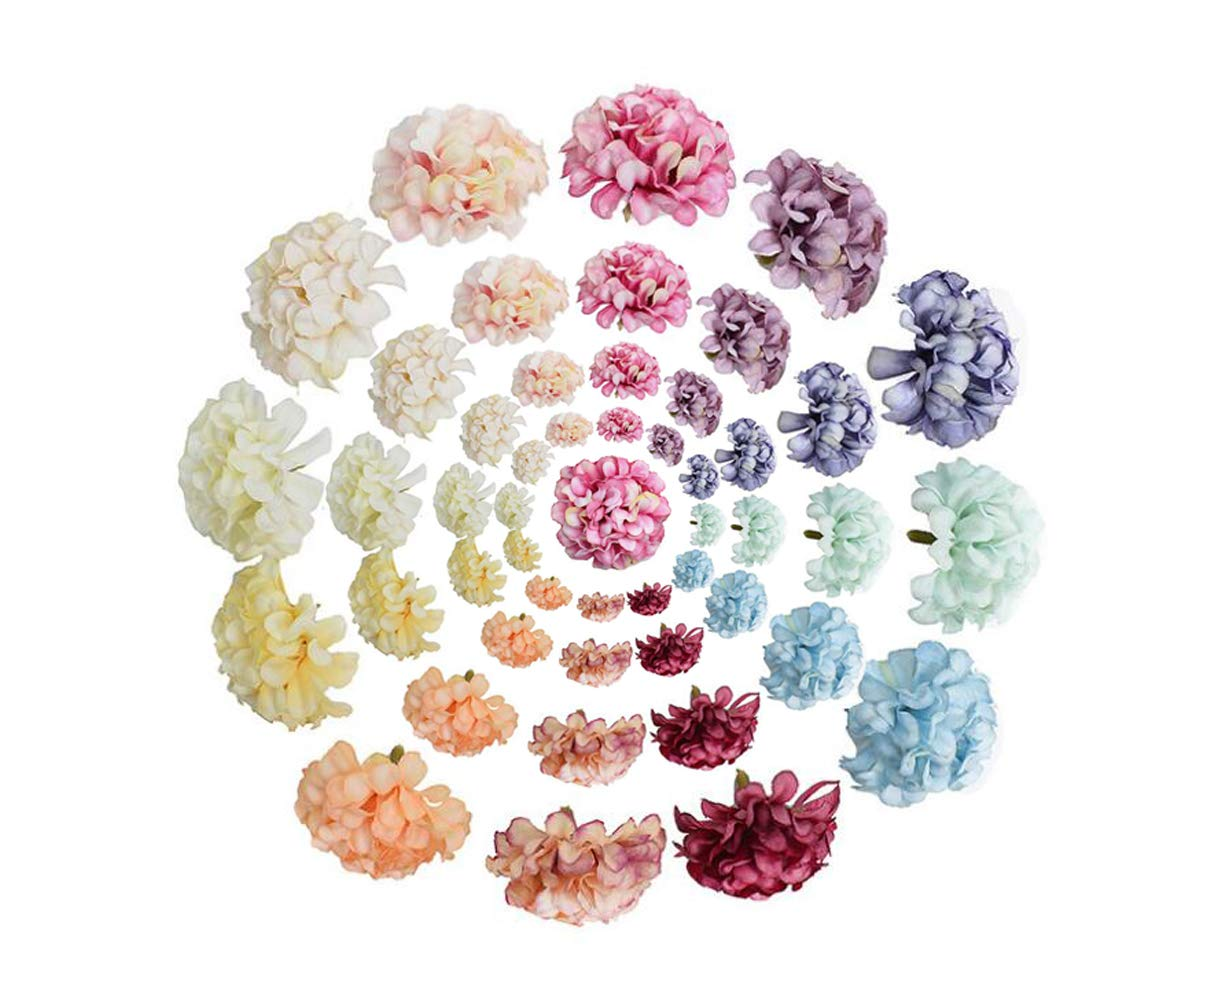 SYBL 50 Packs Artificial Flowers Mini Fake Silk Hydrangea Heads Without Stem Bulk Decor Accessories for Wedding Party Home Decoration DIY Bouquets Art Craft Supplies